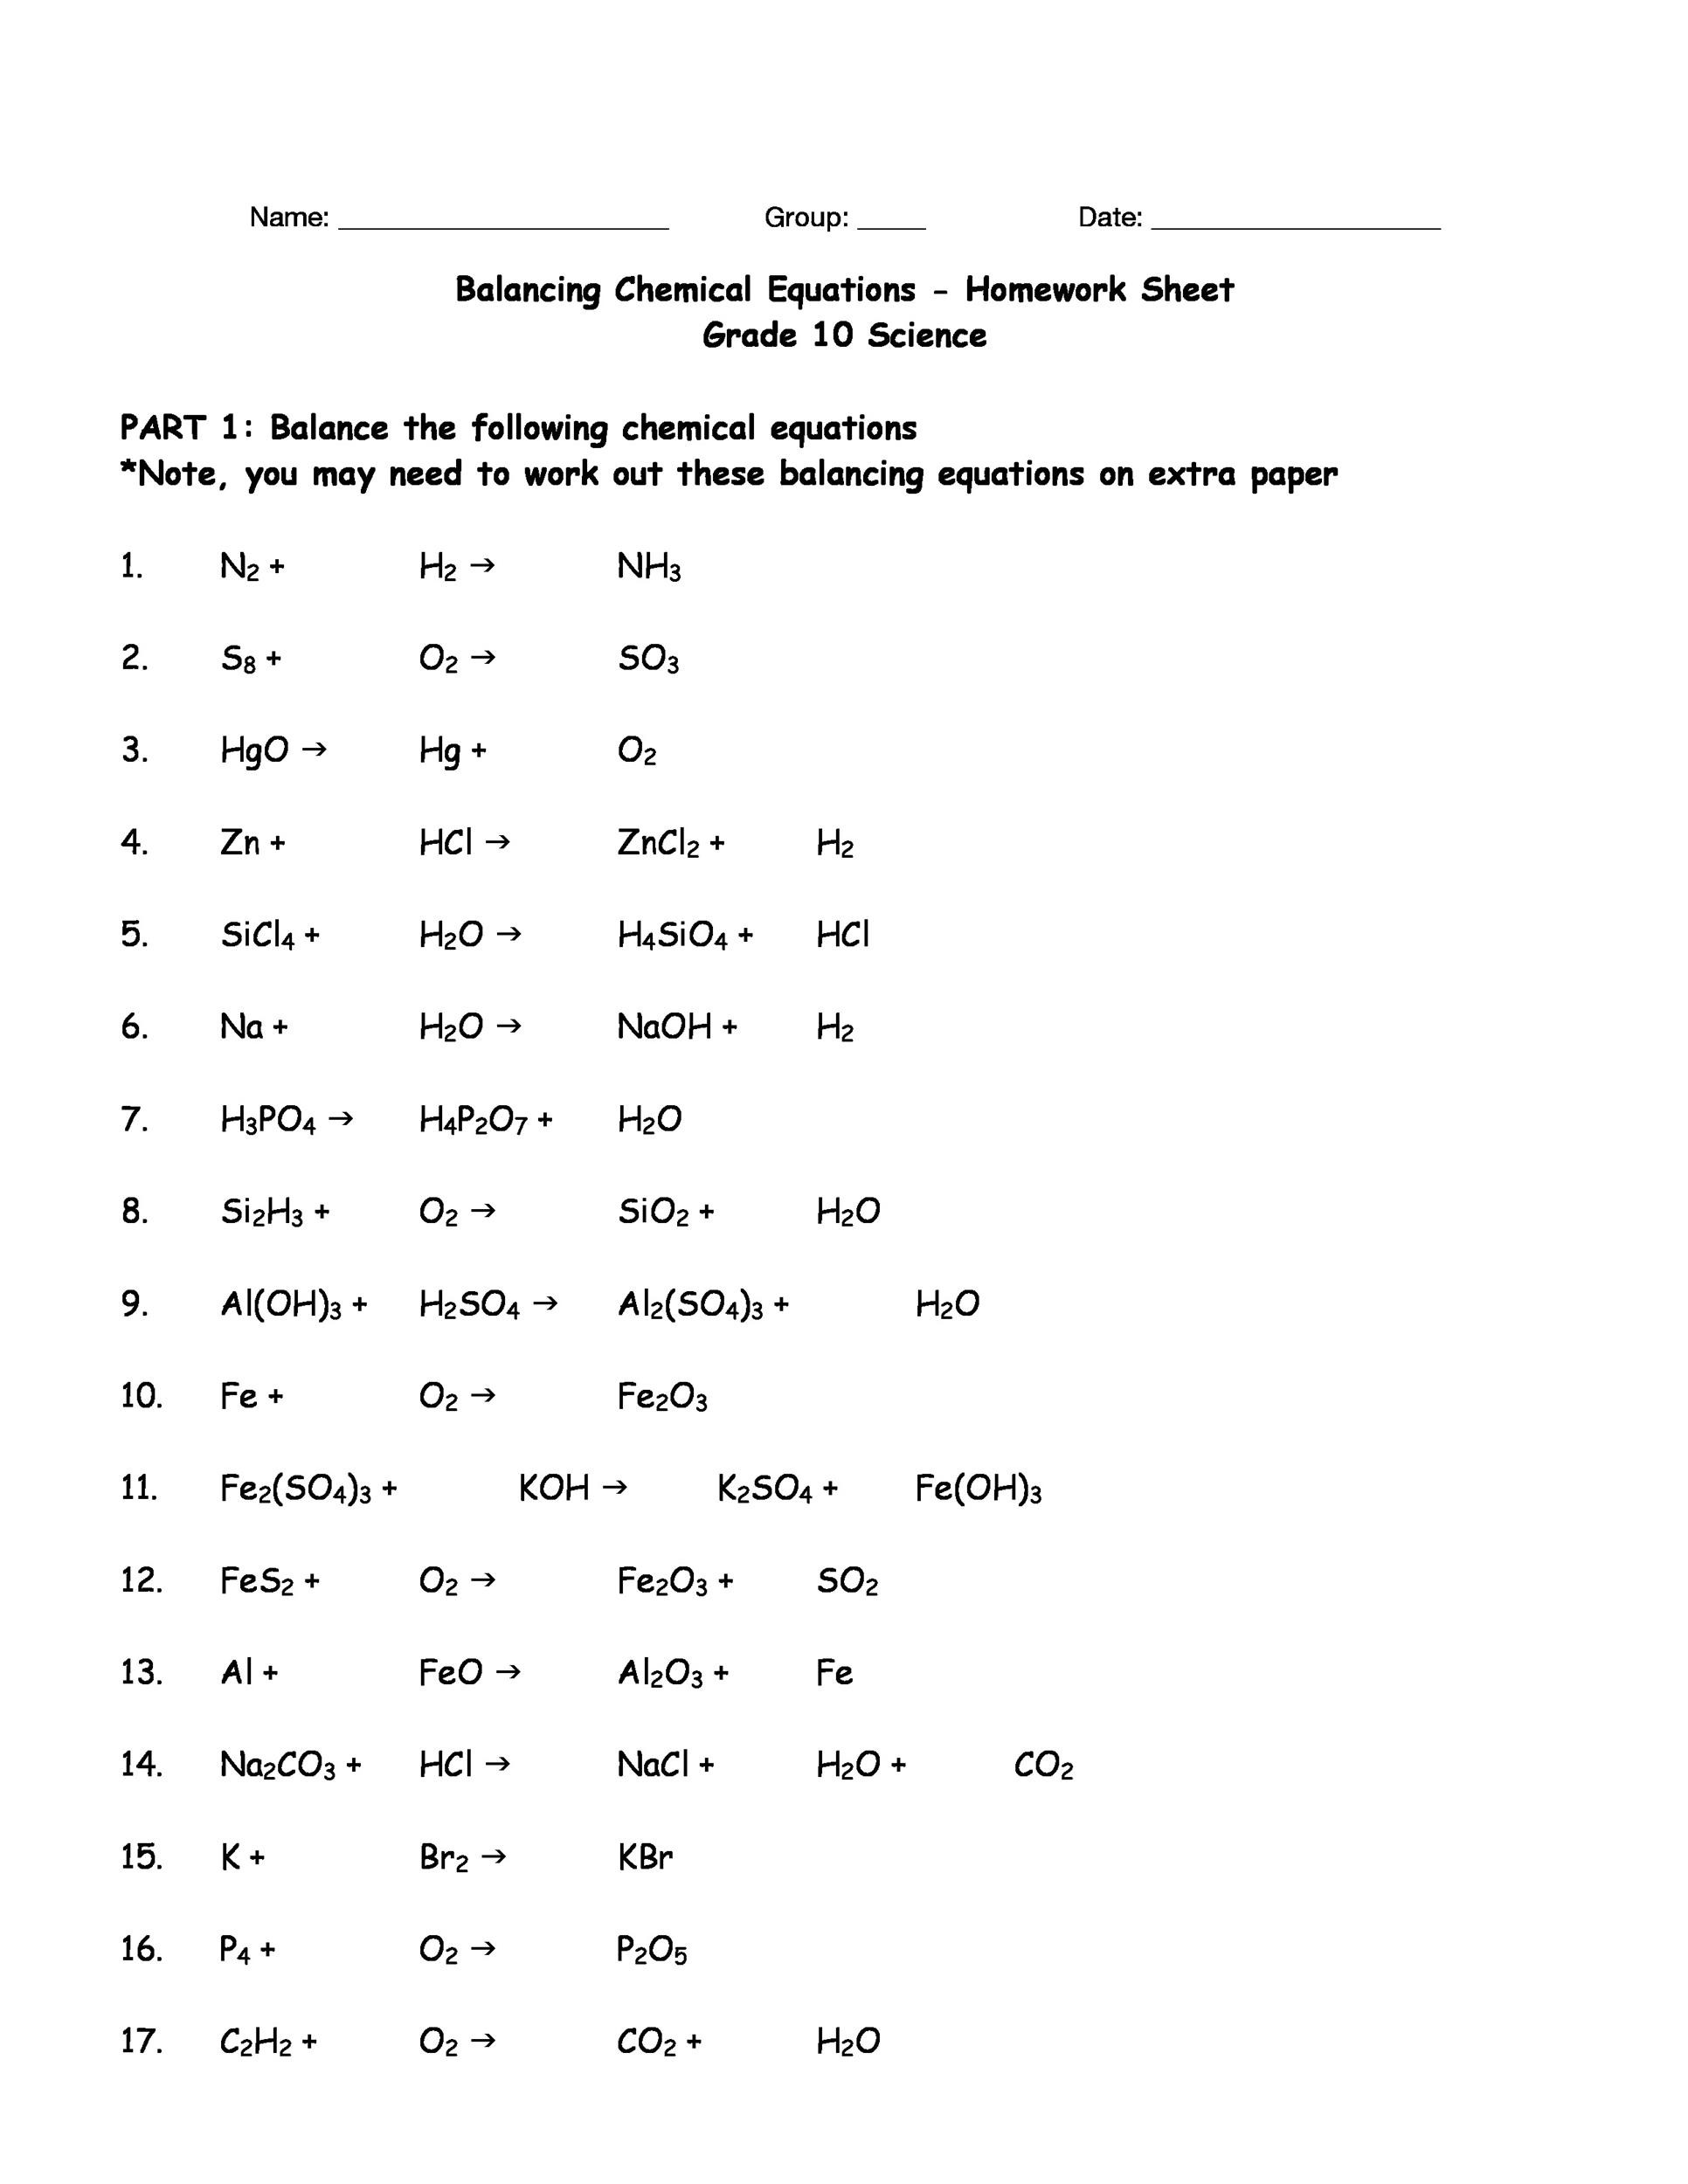 Balancing Chemical Equations Worksheet 2 Answers